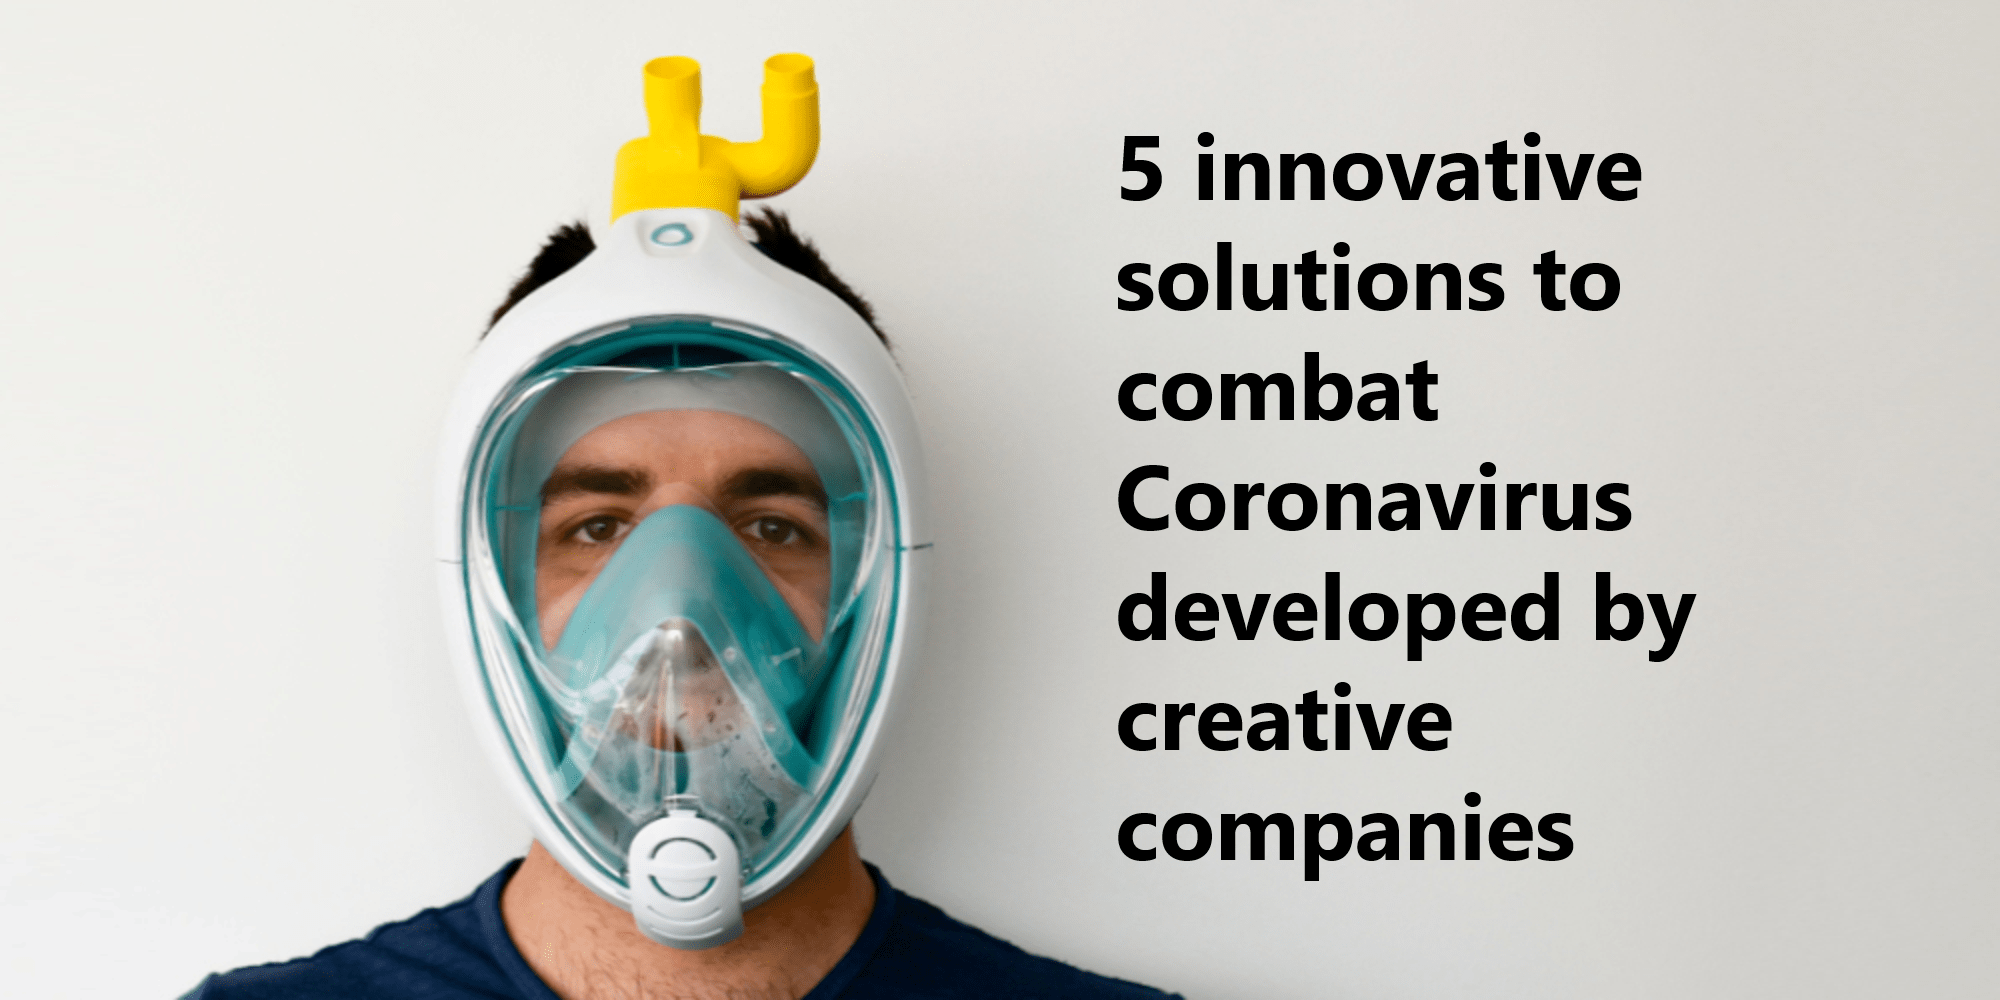 5 innovative solutions to combat Coronavirus developed by creative companies